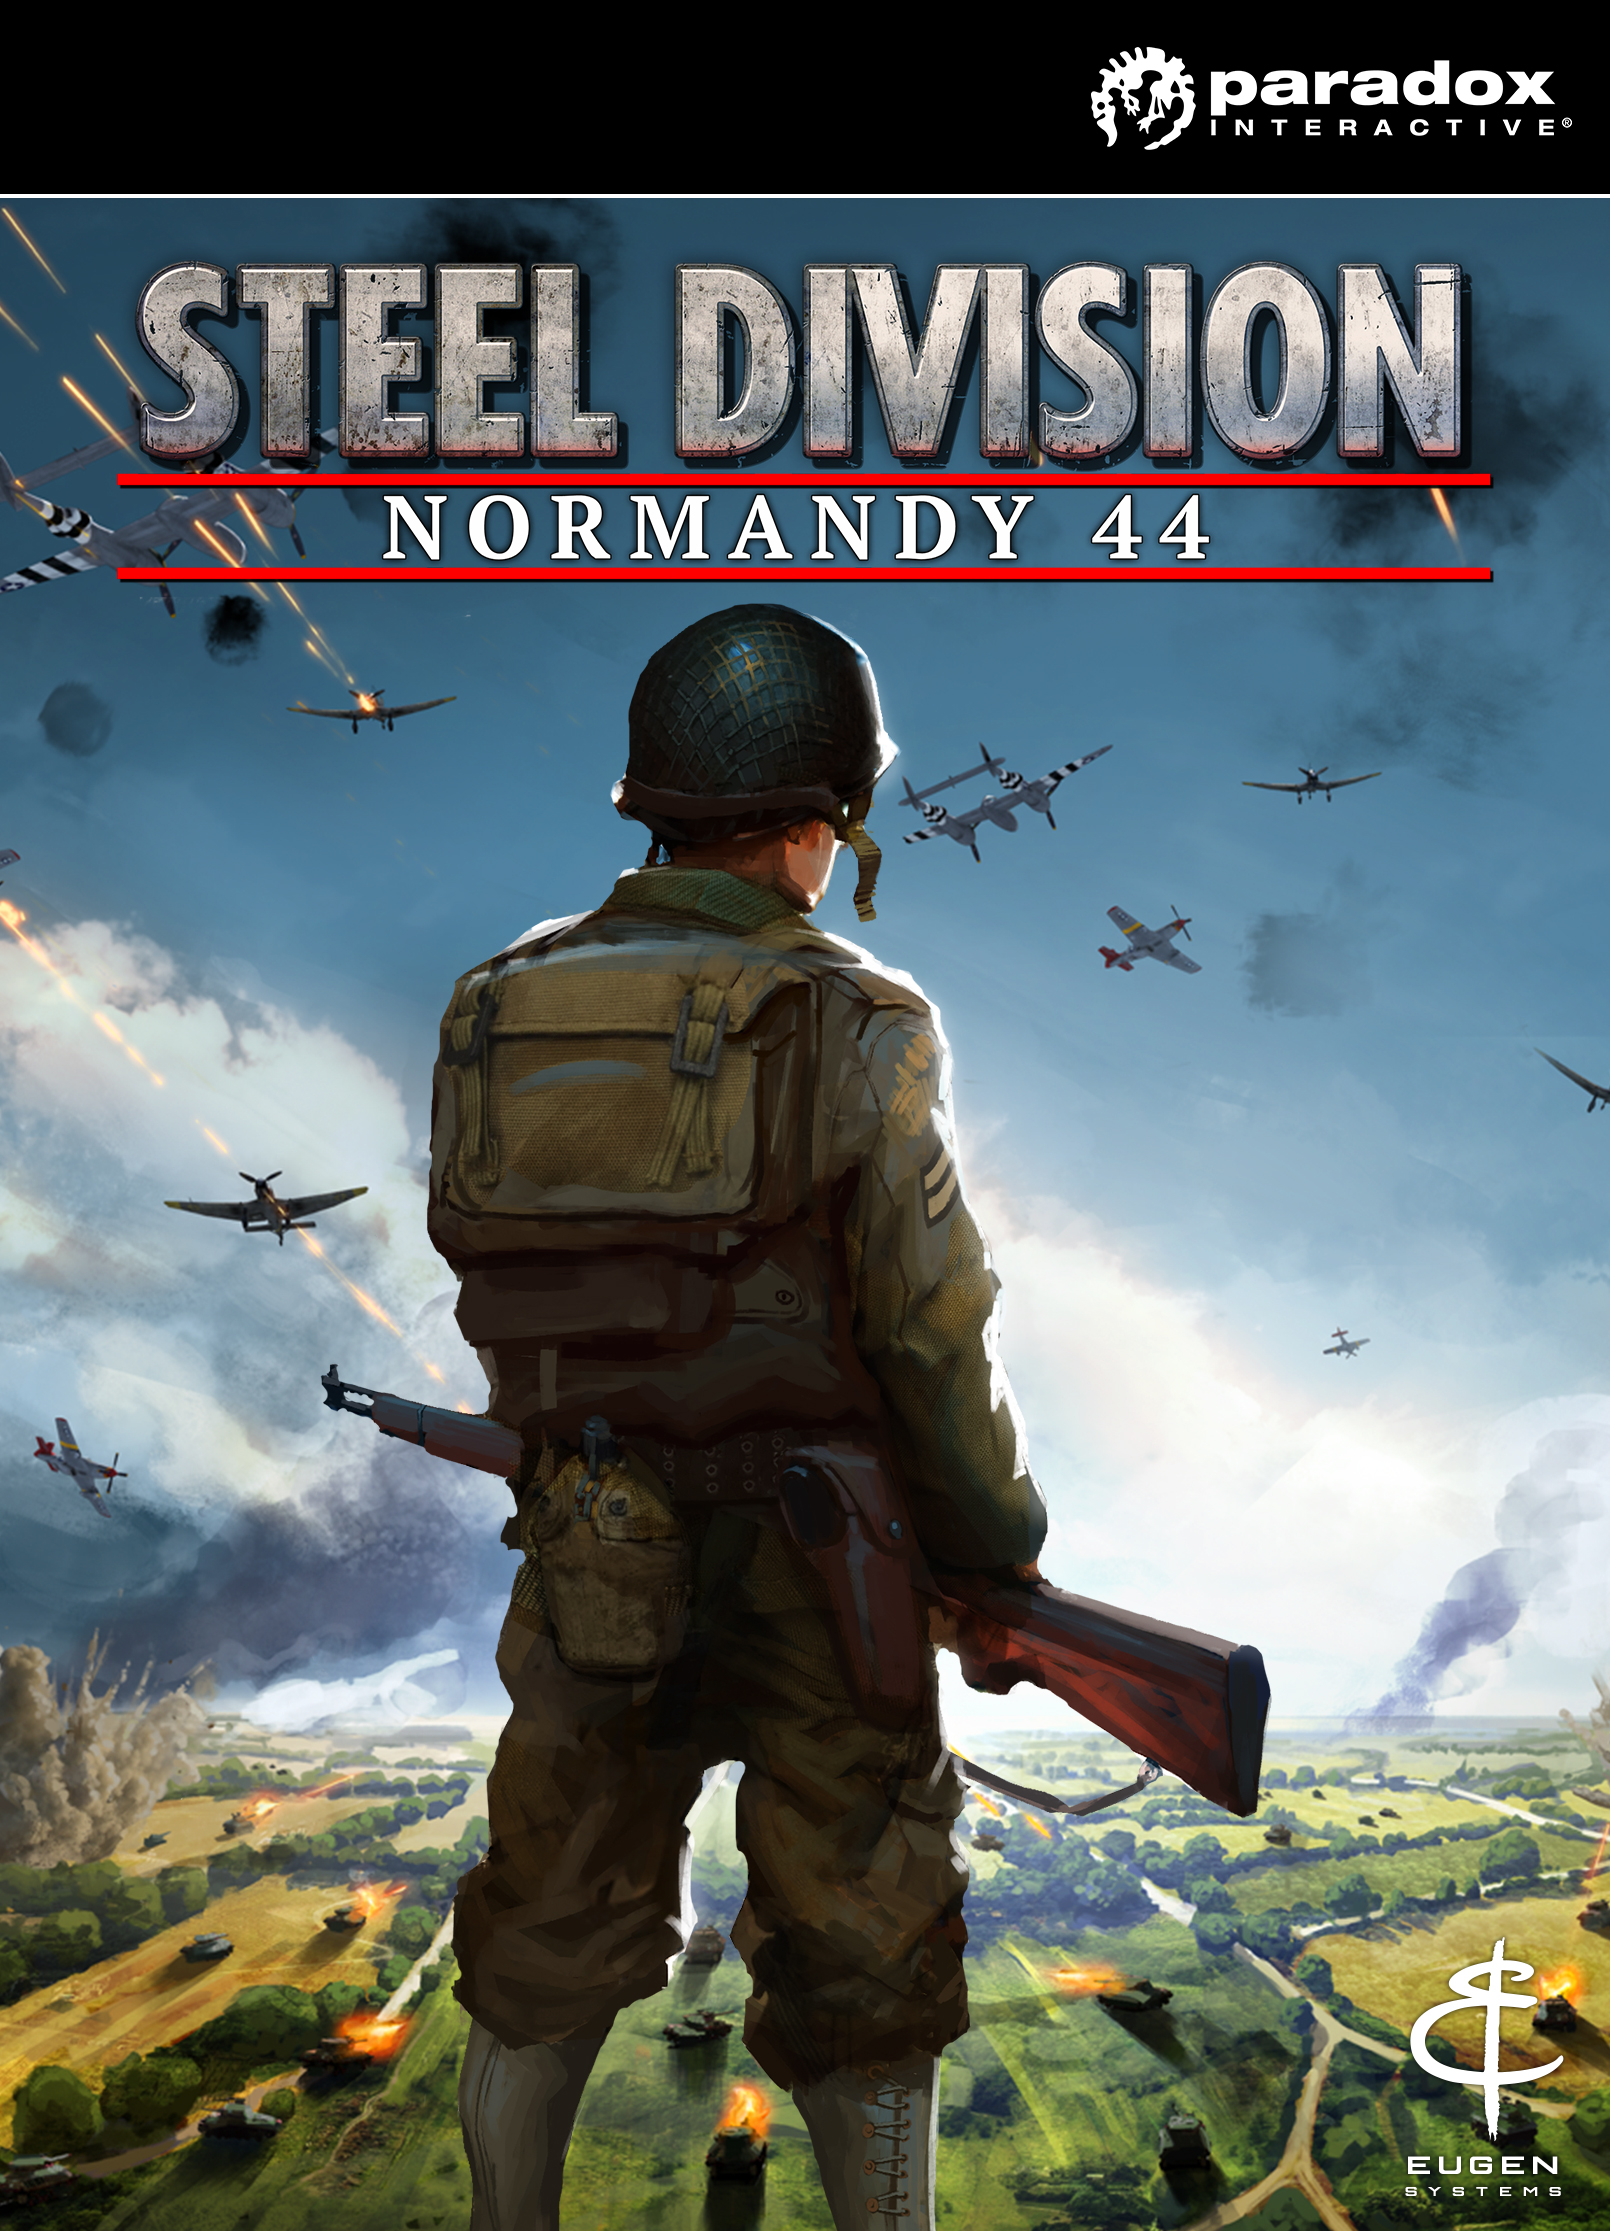 steel-division-normandy-44-pre-order-online-game-code